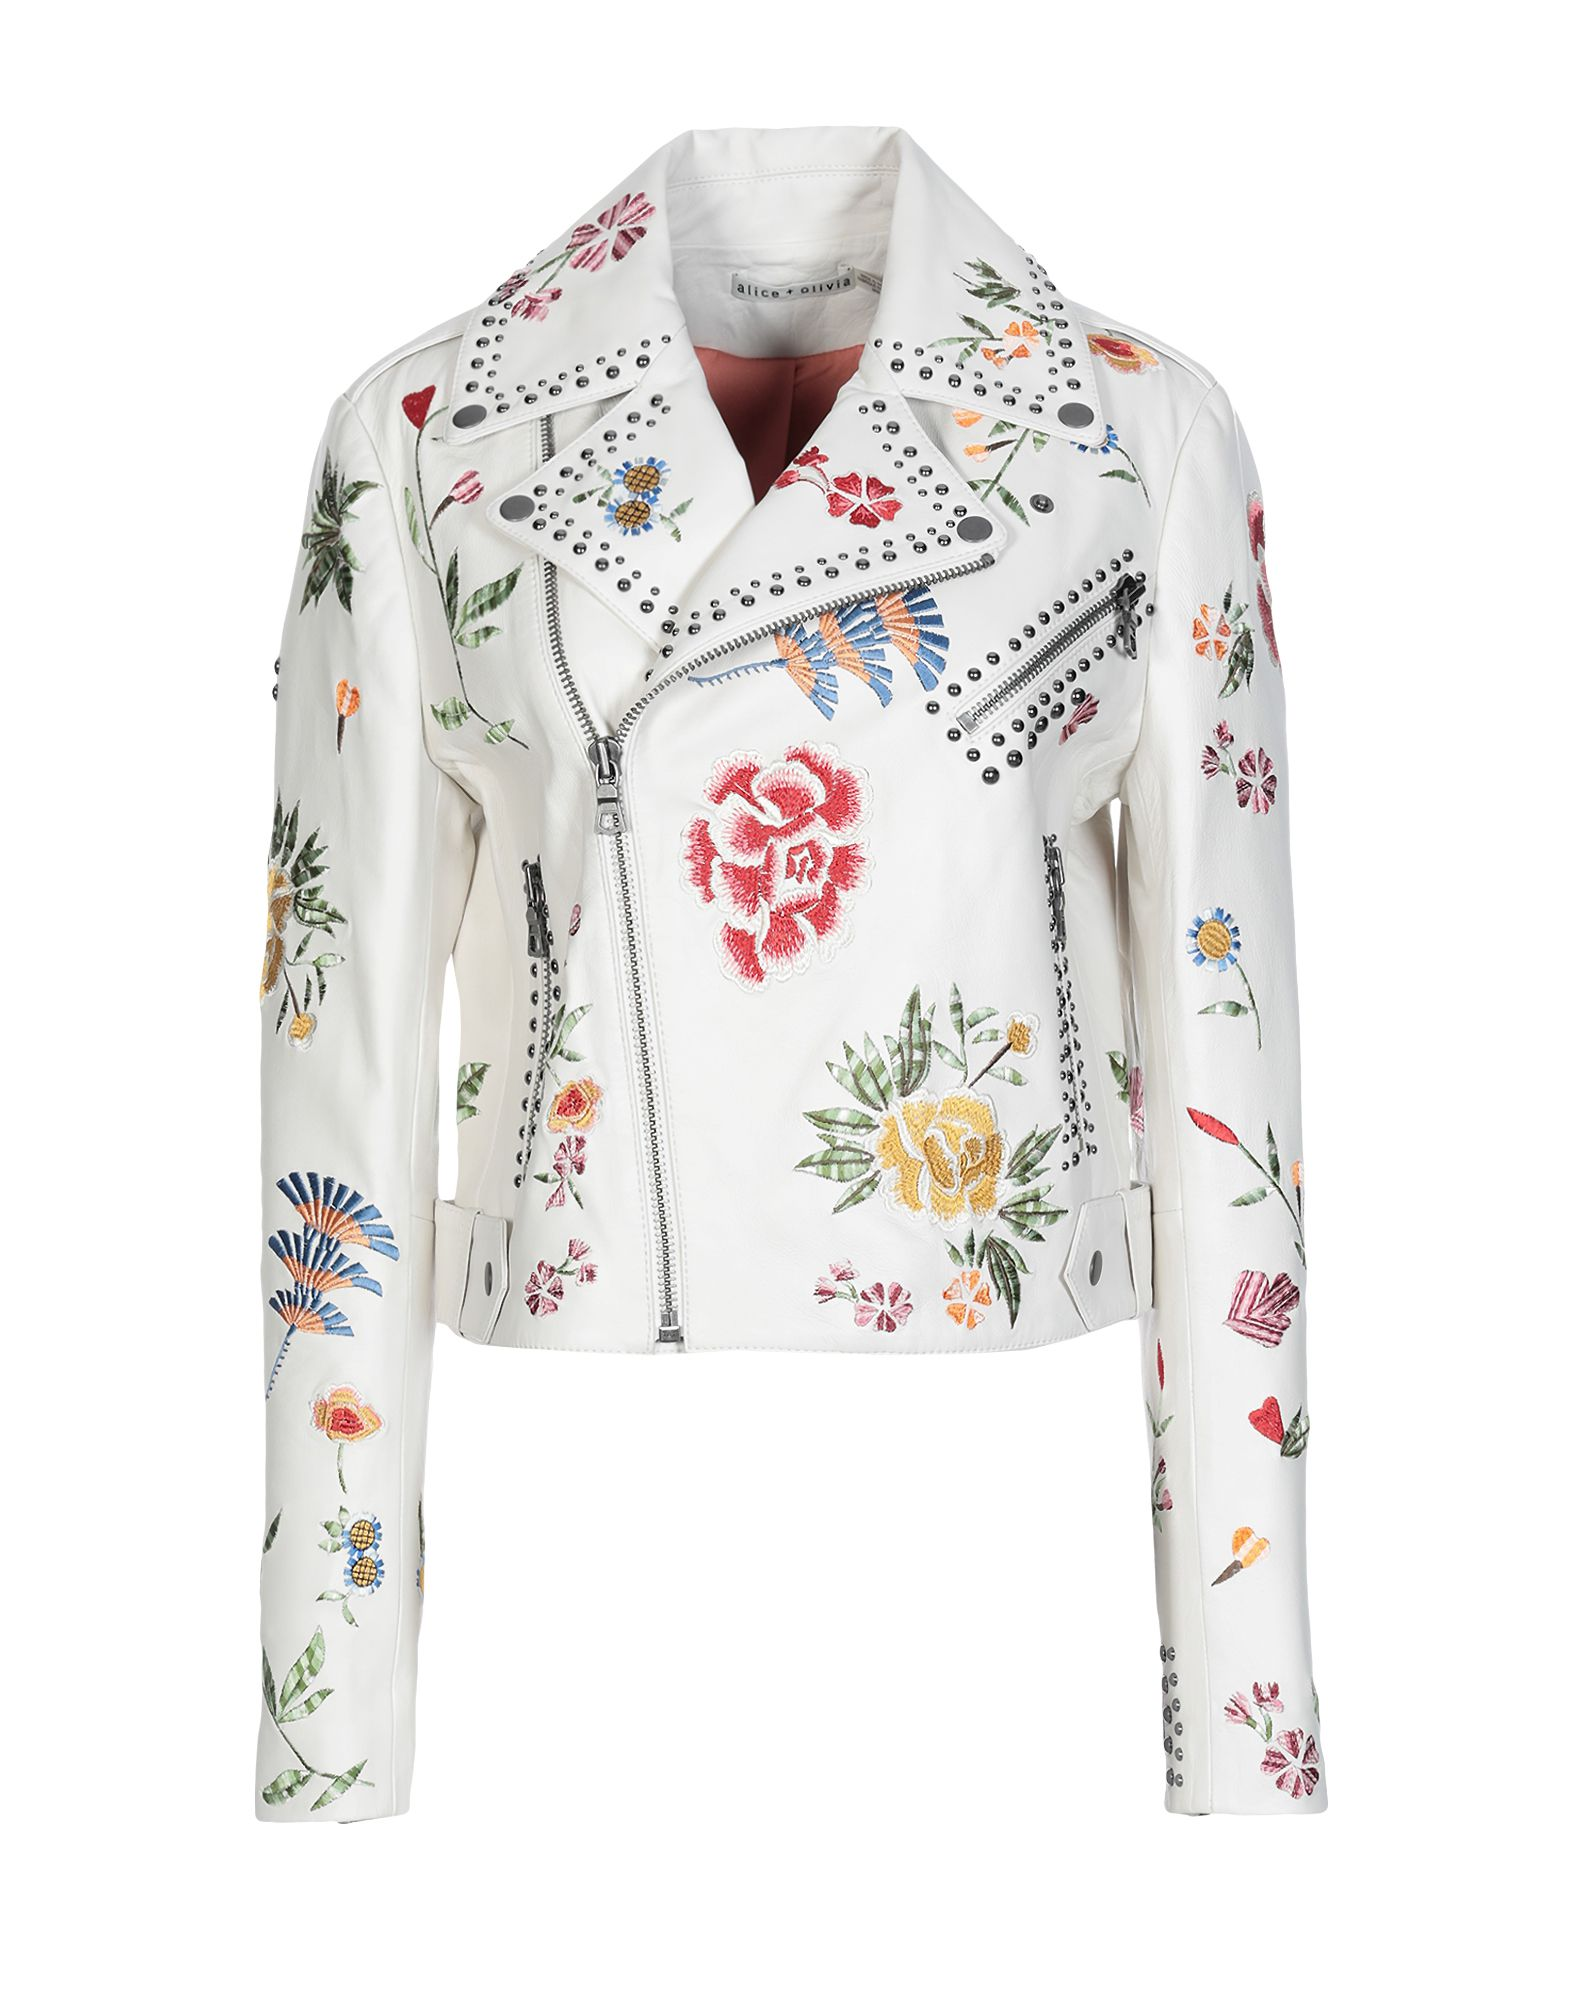 ALICE + OLIVIA Jackets. leather, metal applications, embroidered detailing, floral design, single-breasted, zip, lapel collar, multipockets, long sleeves, zipped cuffs, fully lined, contains non-textile parts of animal origin, biker style, large sized. 100% Lambskin